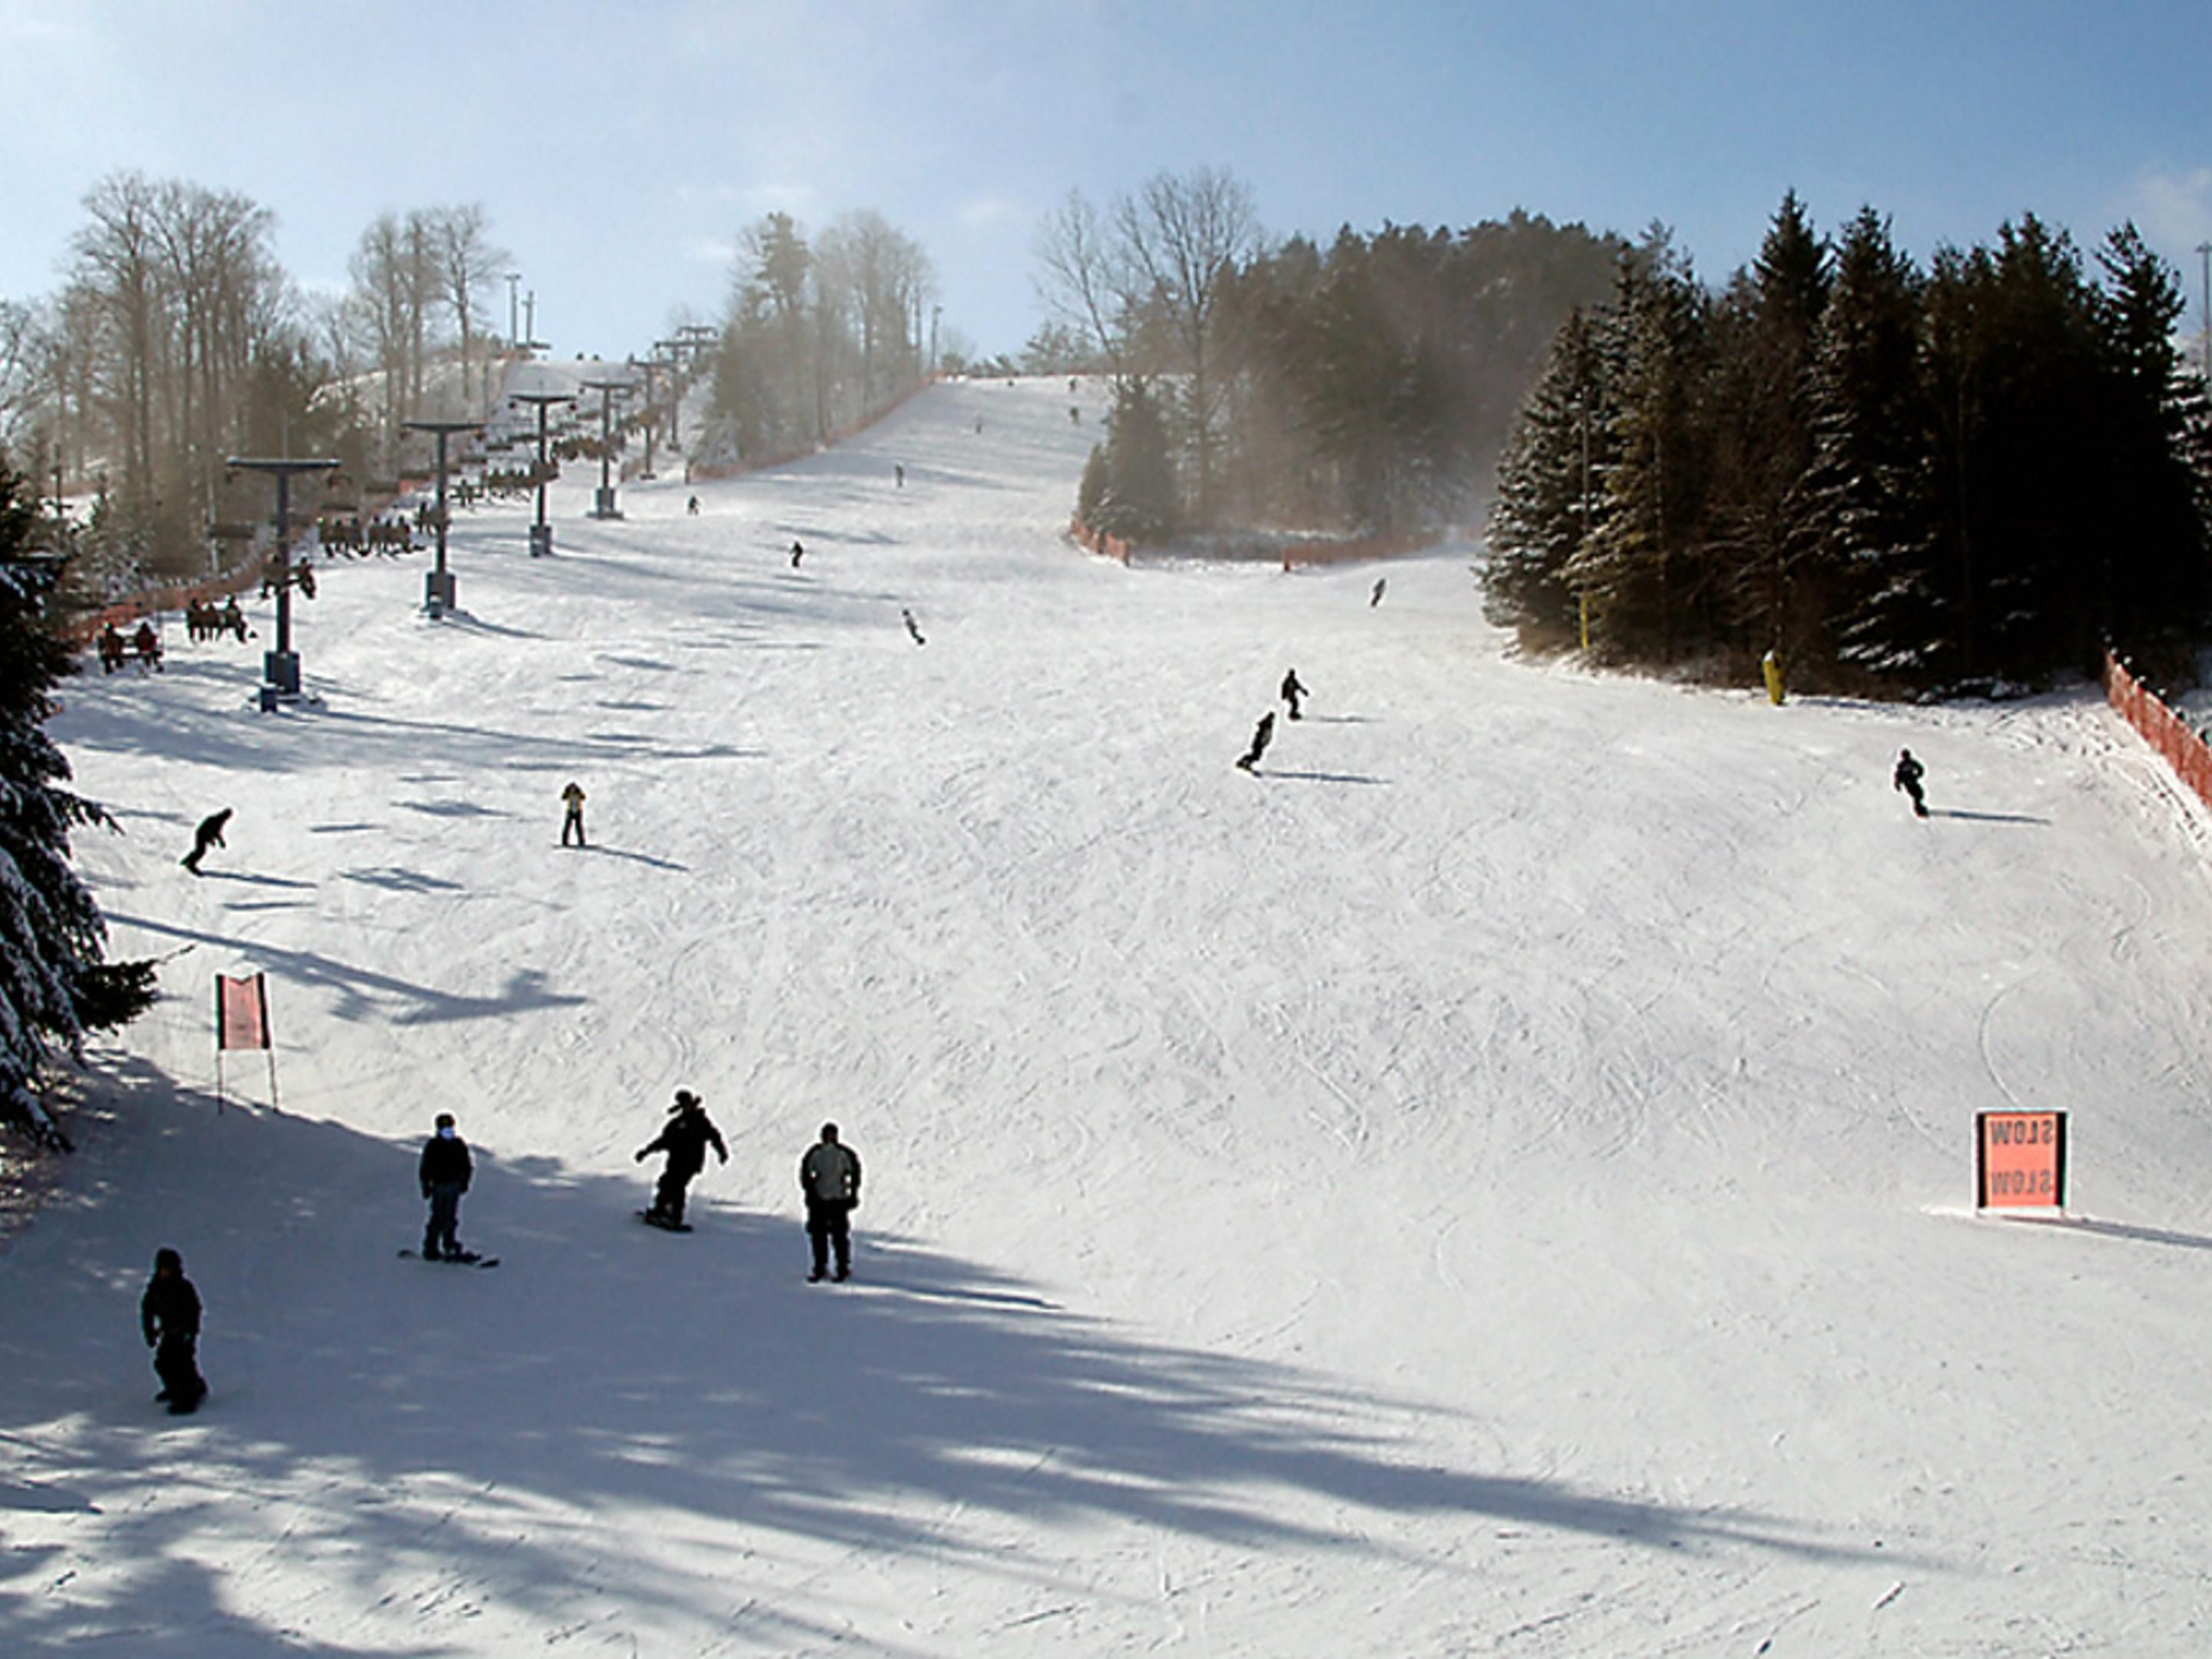 Chicopee Ski Hill - Located 3KM from Hotel